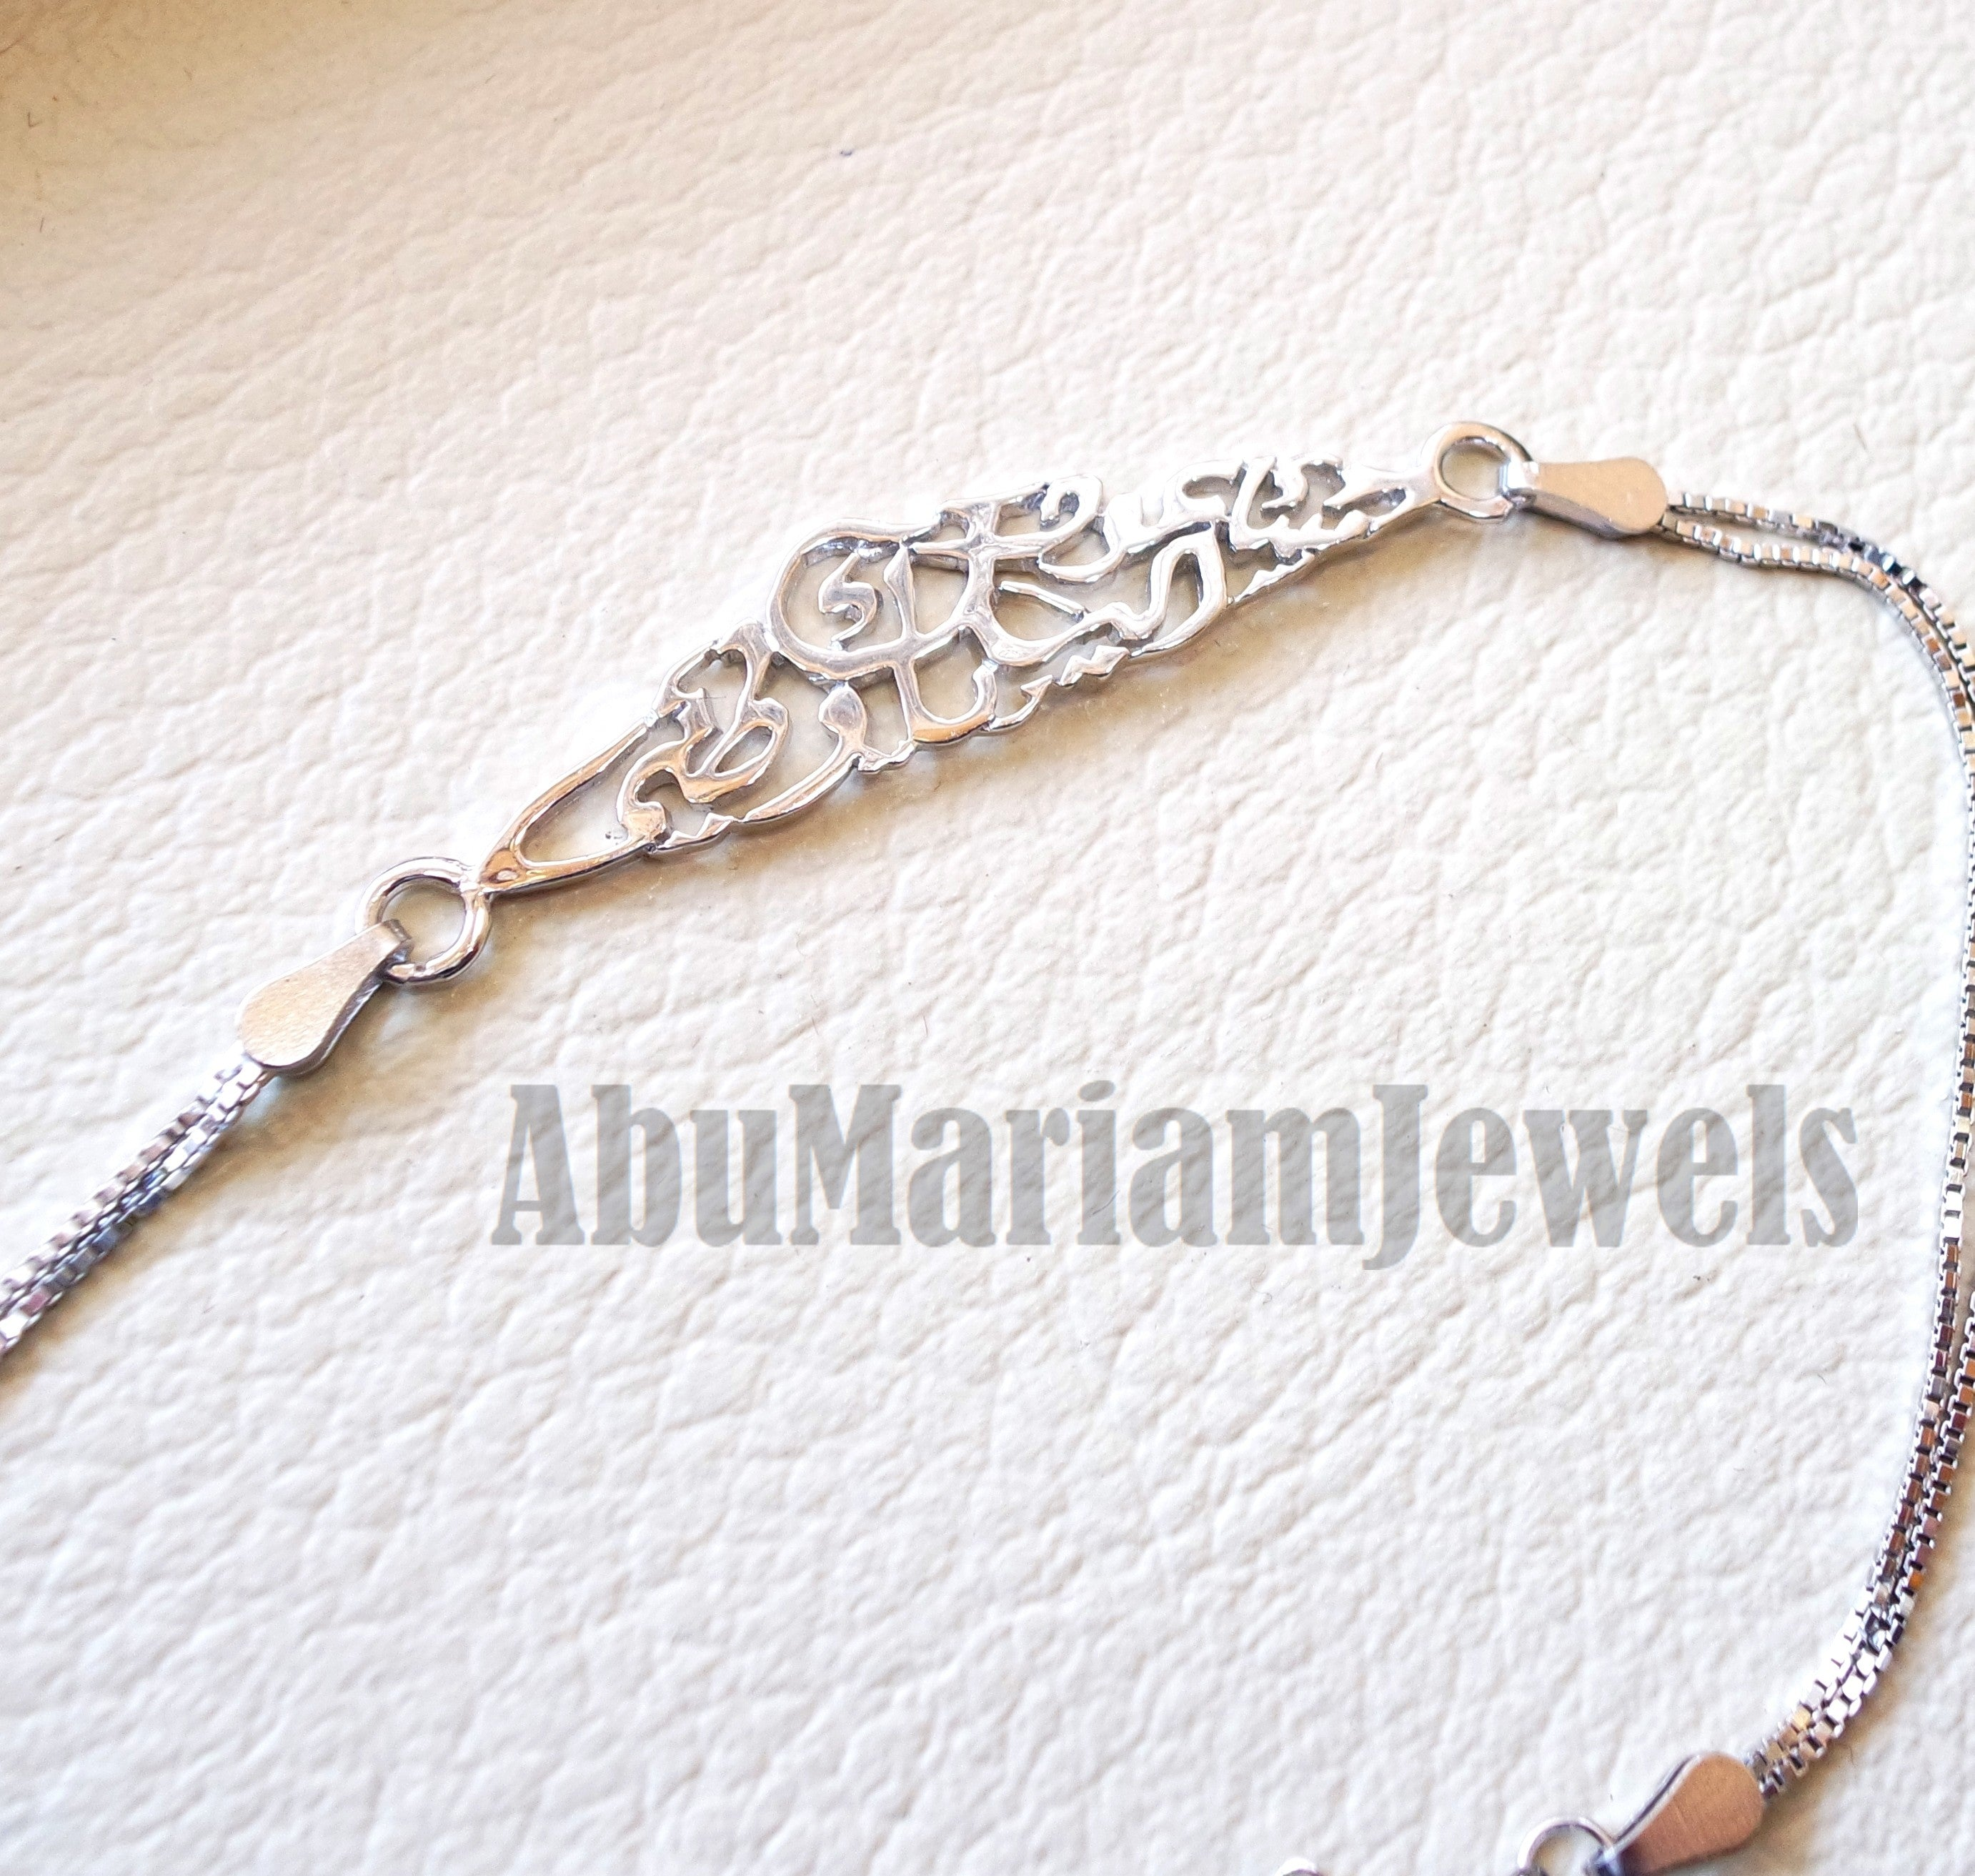 Palestine map chain bracelet with famous verse sterling silver 925 k high quality jewelry arabic fast shipping adjustable خارطه و علم فلسطين